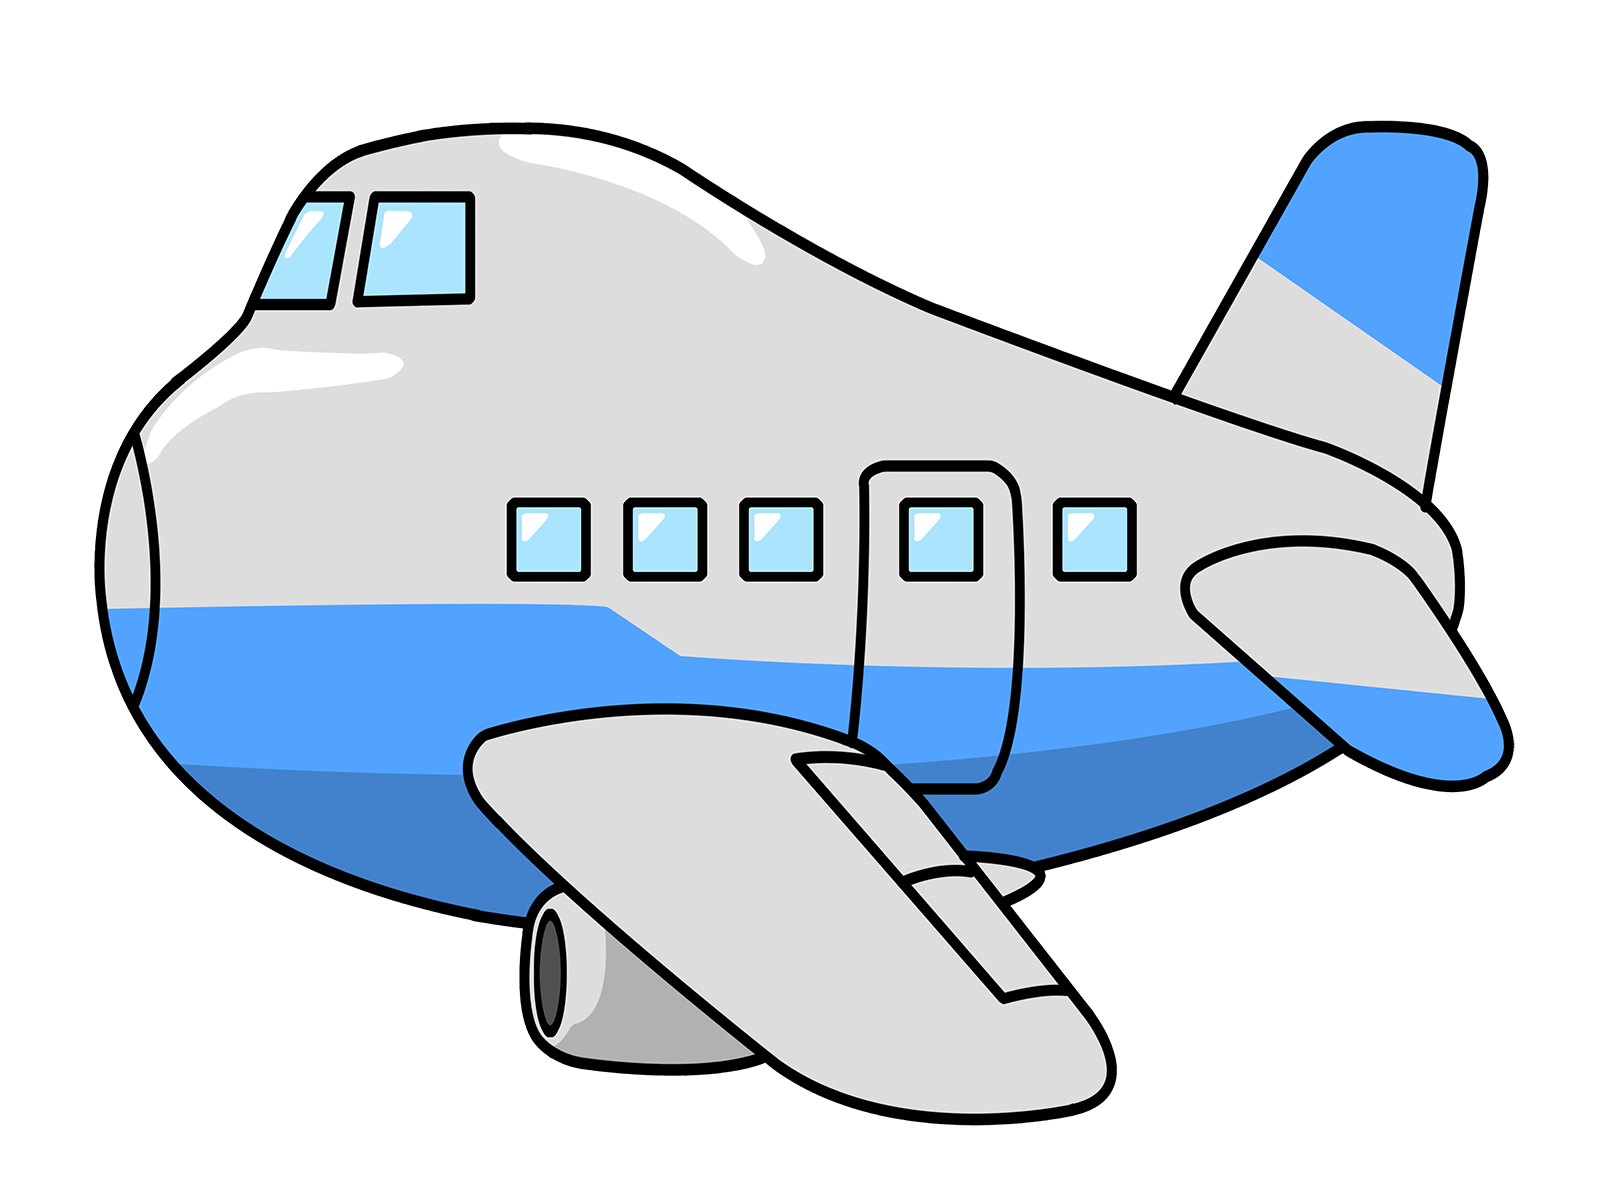 Clipart of airplane transparent library Use this clip art on your | Clipart Panda - Free Clipart Images ... transparent library